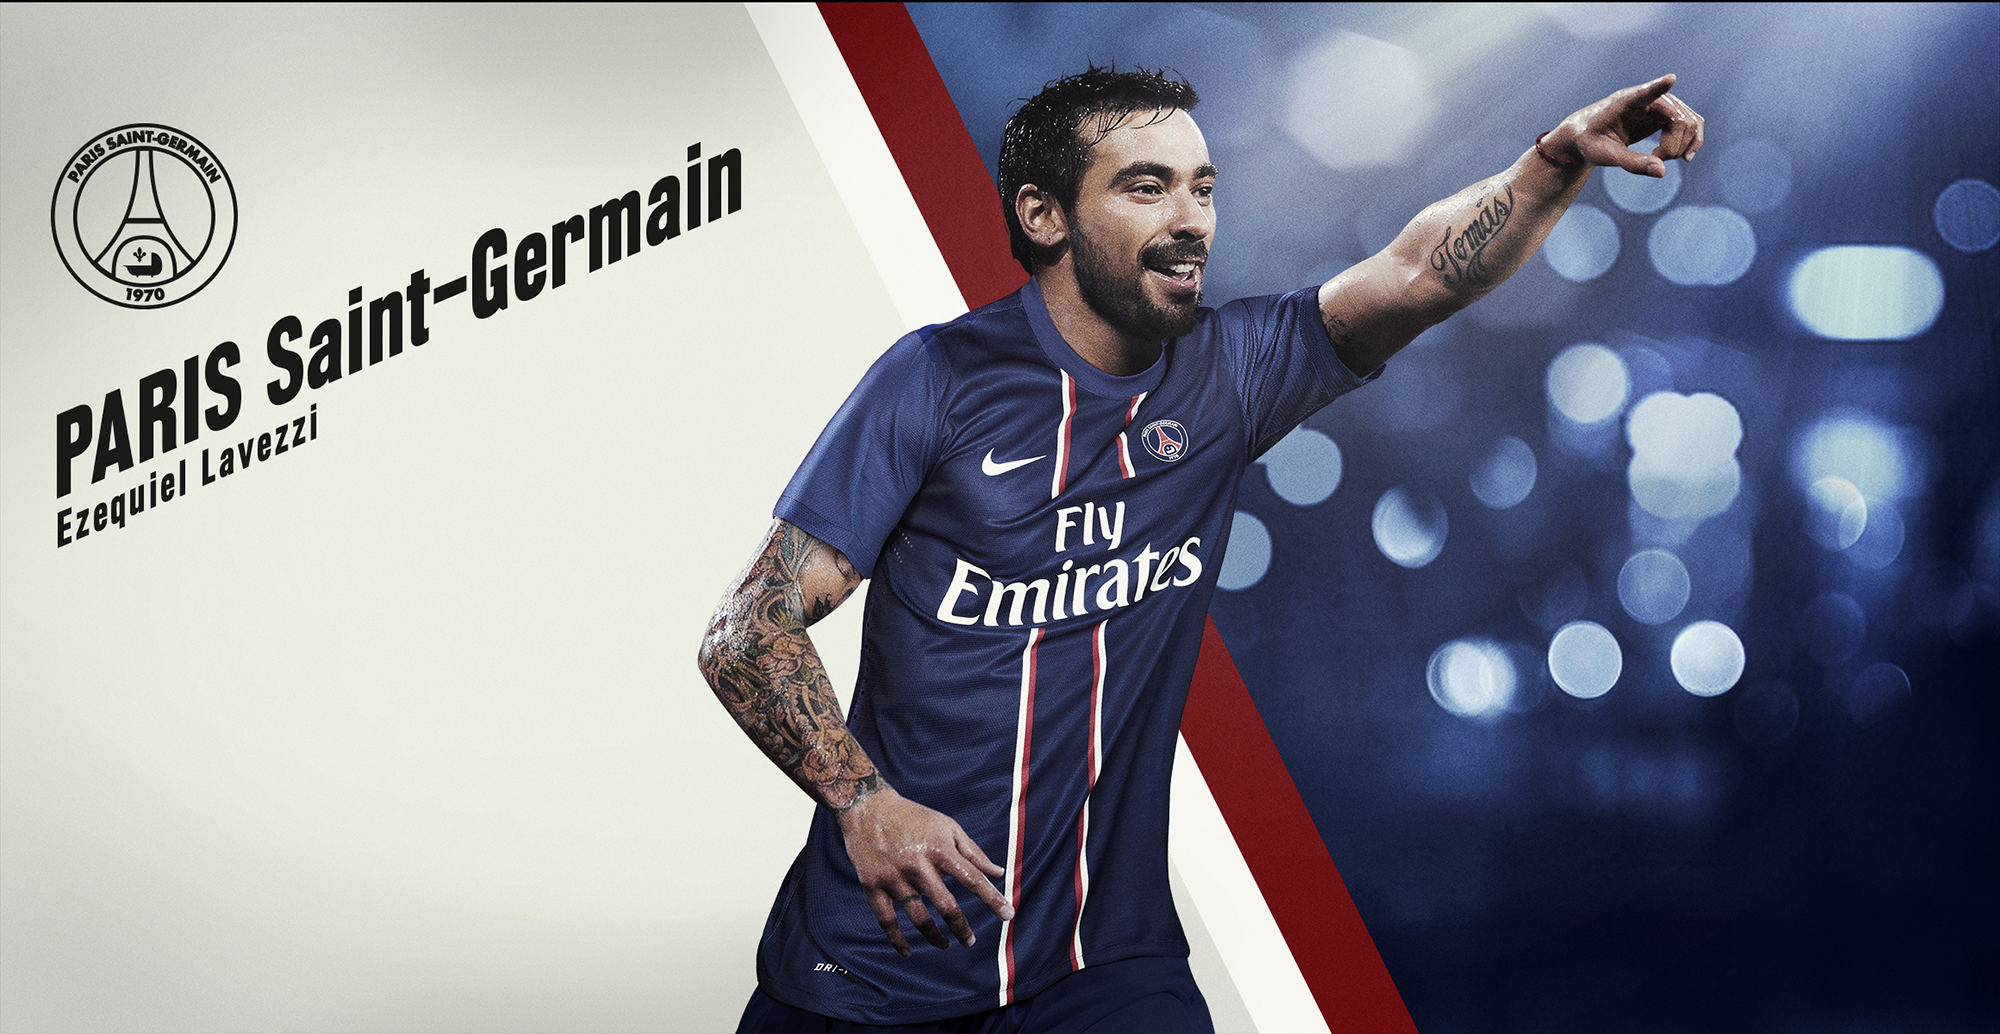 Ezequiel Lavezzi Football Wallpaper Backgrounds And Picture